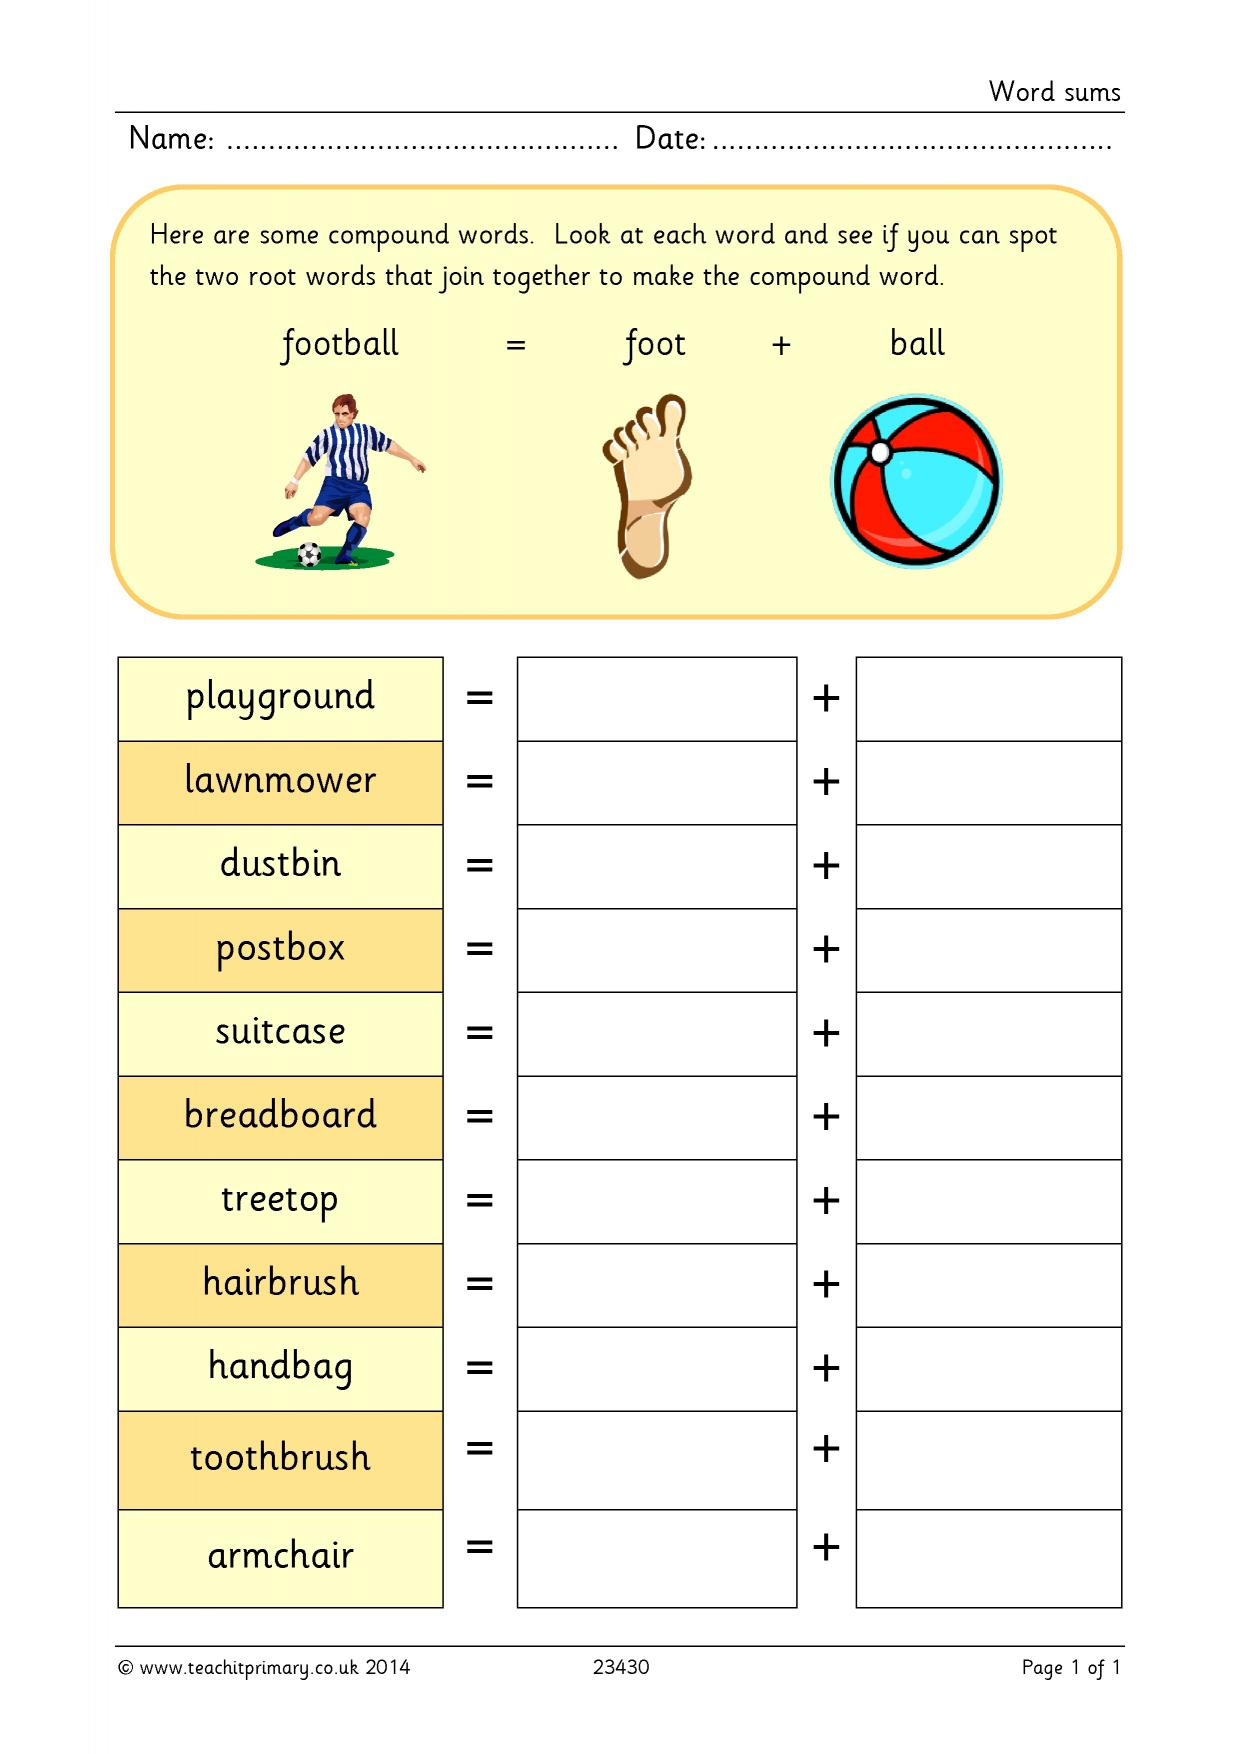 Word sums - Spelling for beginners - Home page